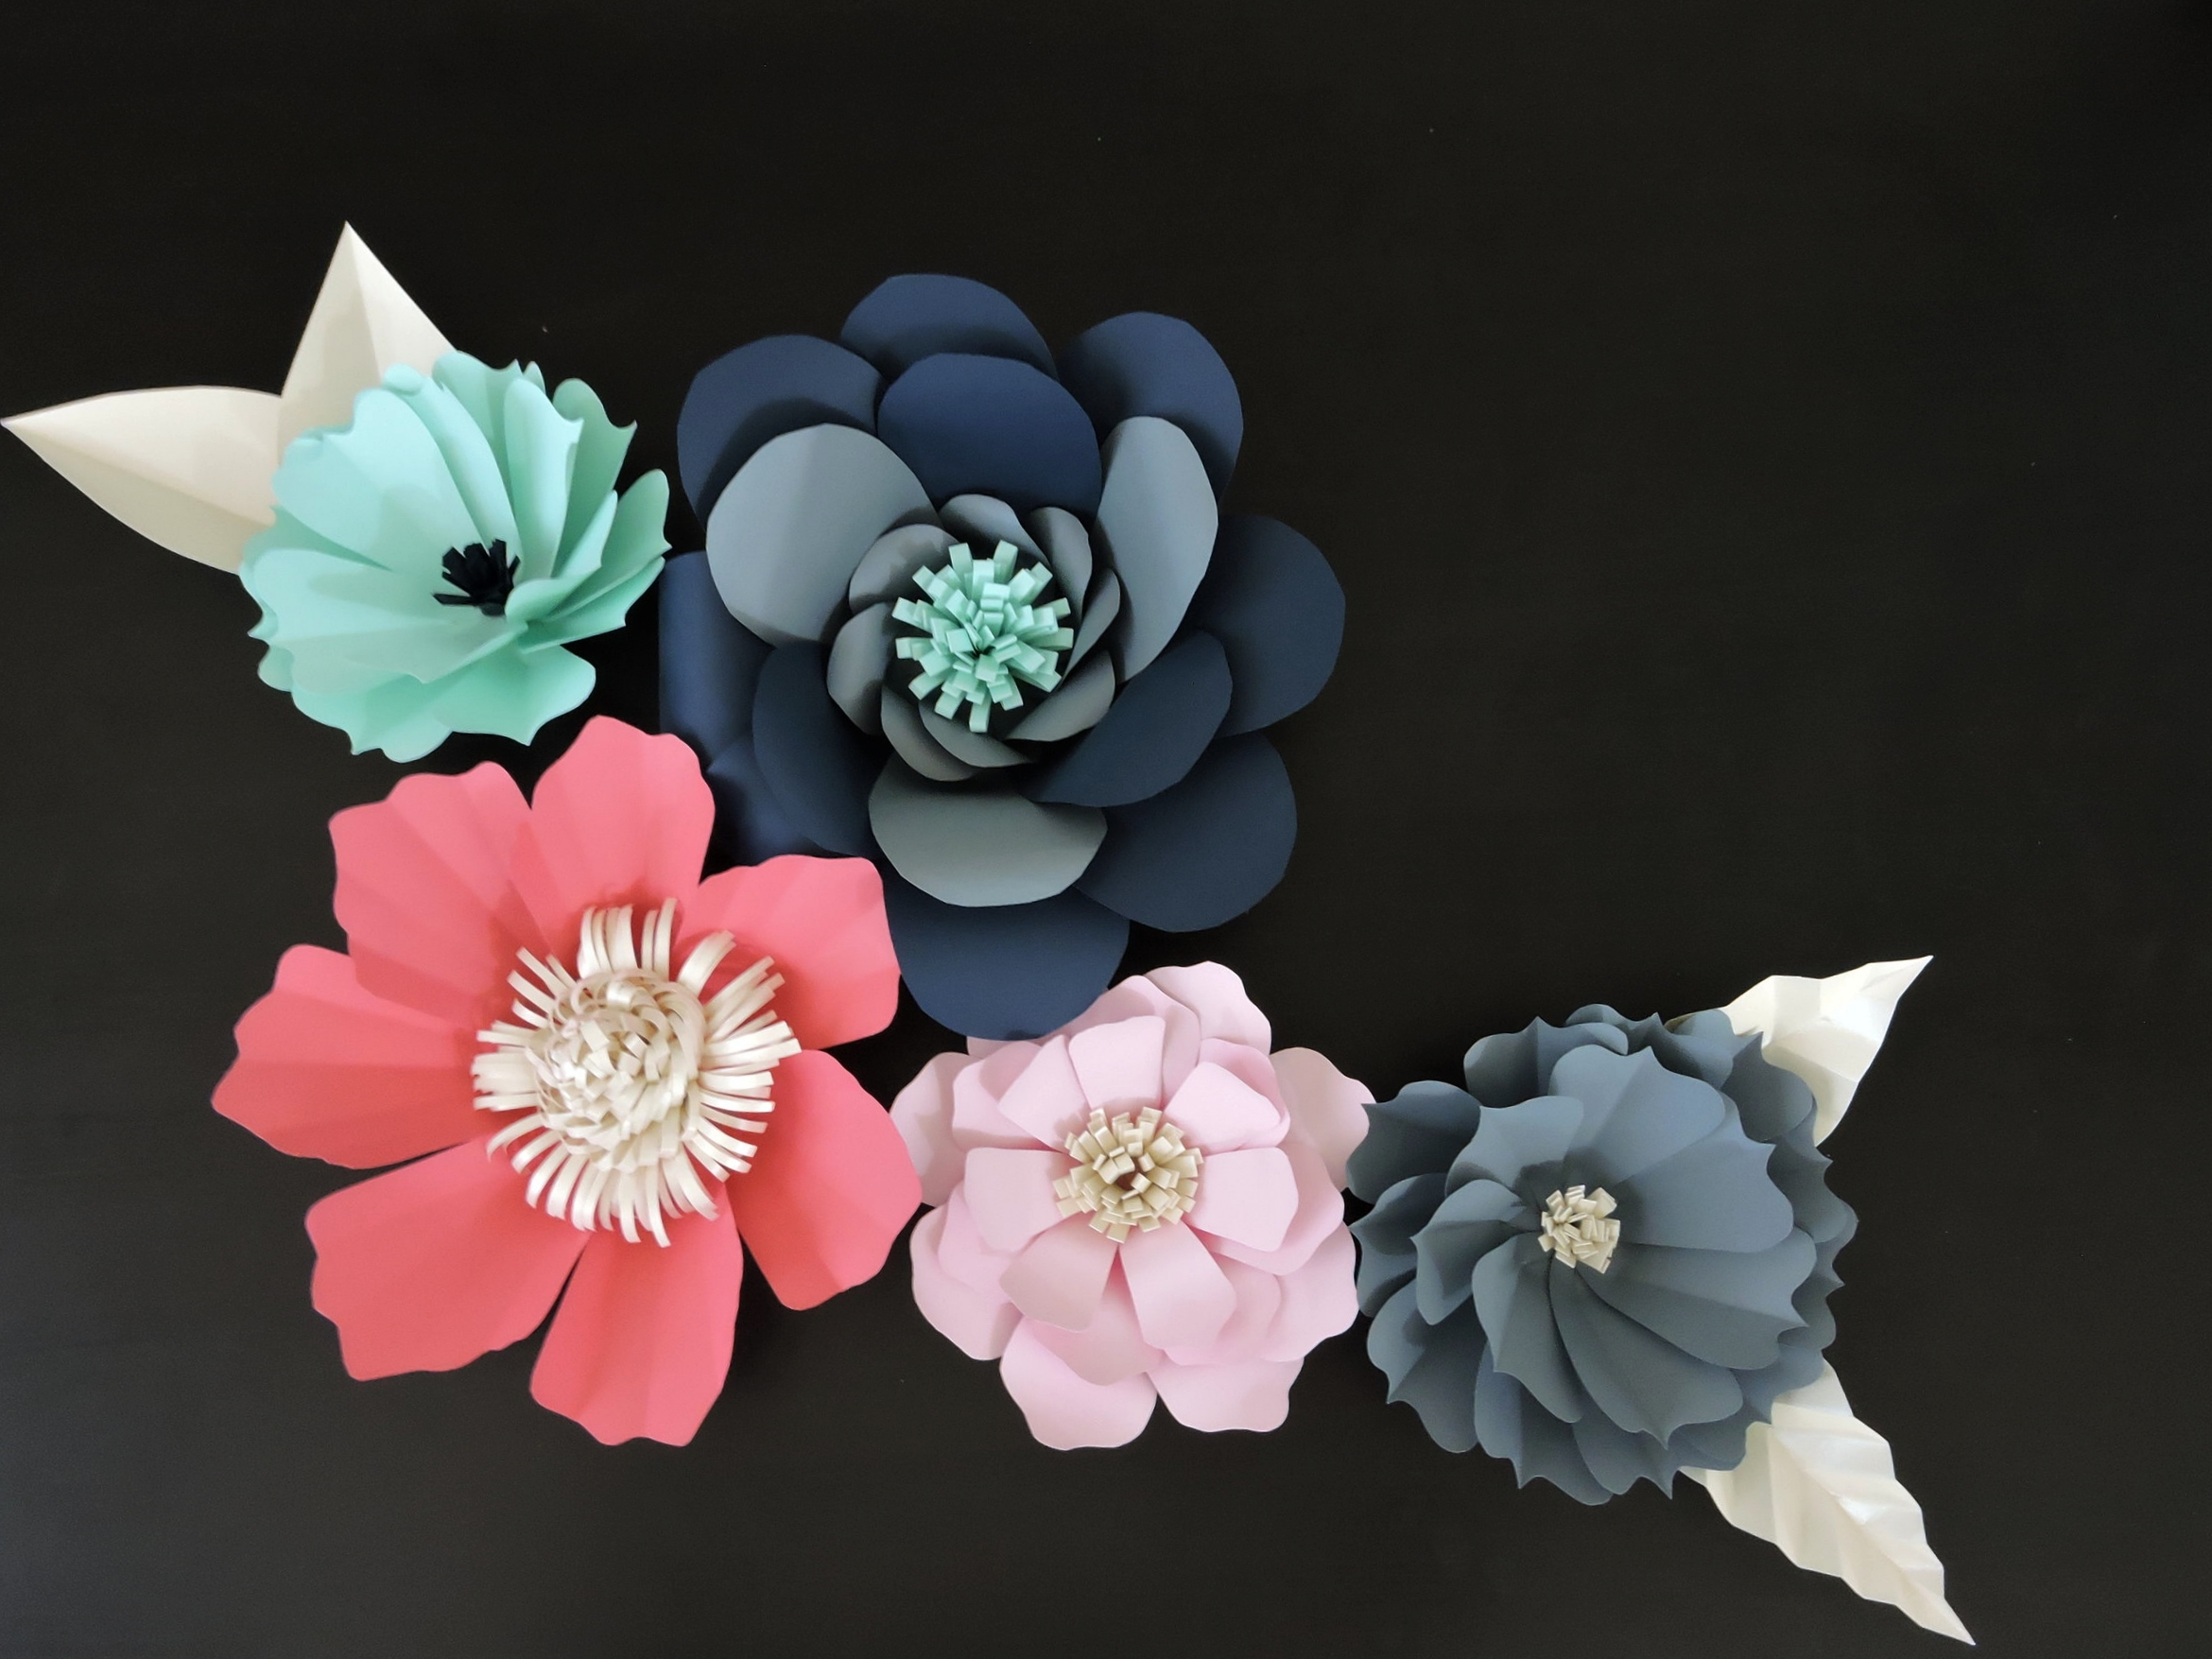 DIY Giant Paper Flowers - The Basics